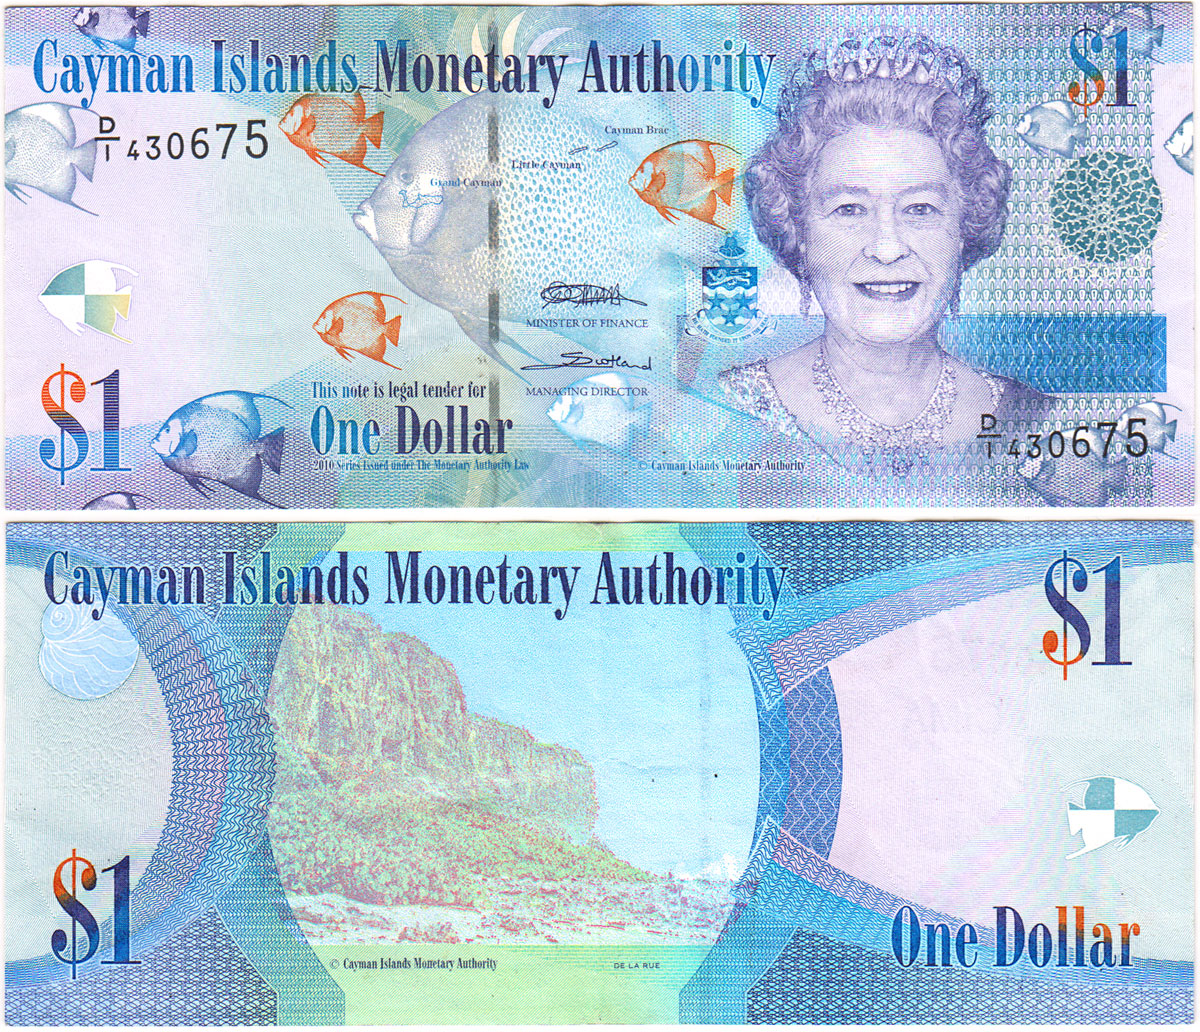 Cayman Islands Monetary Authorit